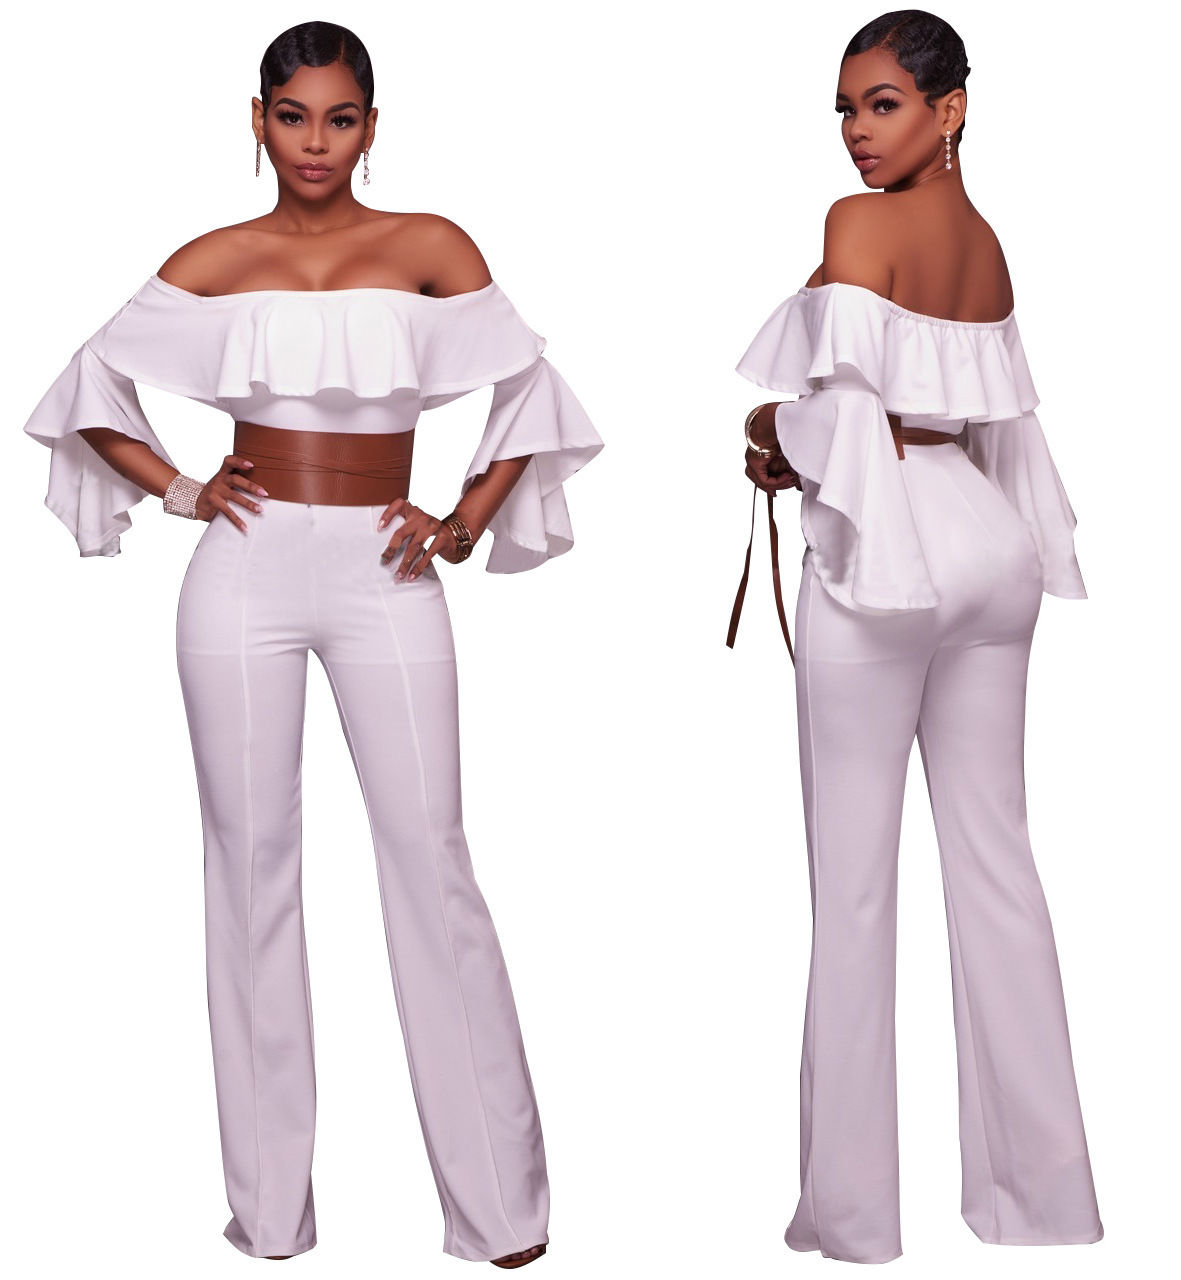 ff9a9caced03 ... OFF SHOULDER RUFFLE BELL SLEEVE JUMPSUIT Return to Previous Page. New.  lightbox